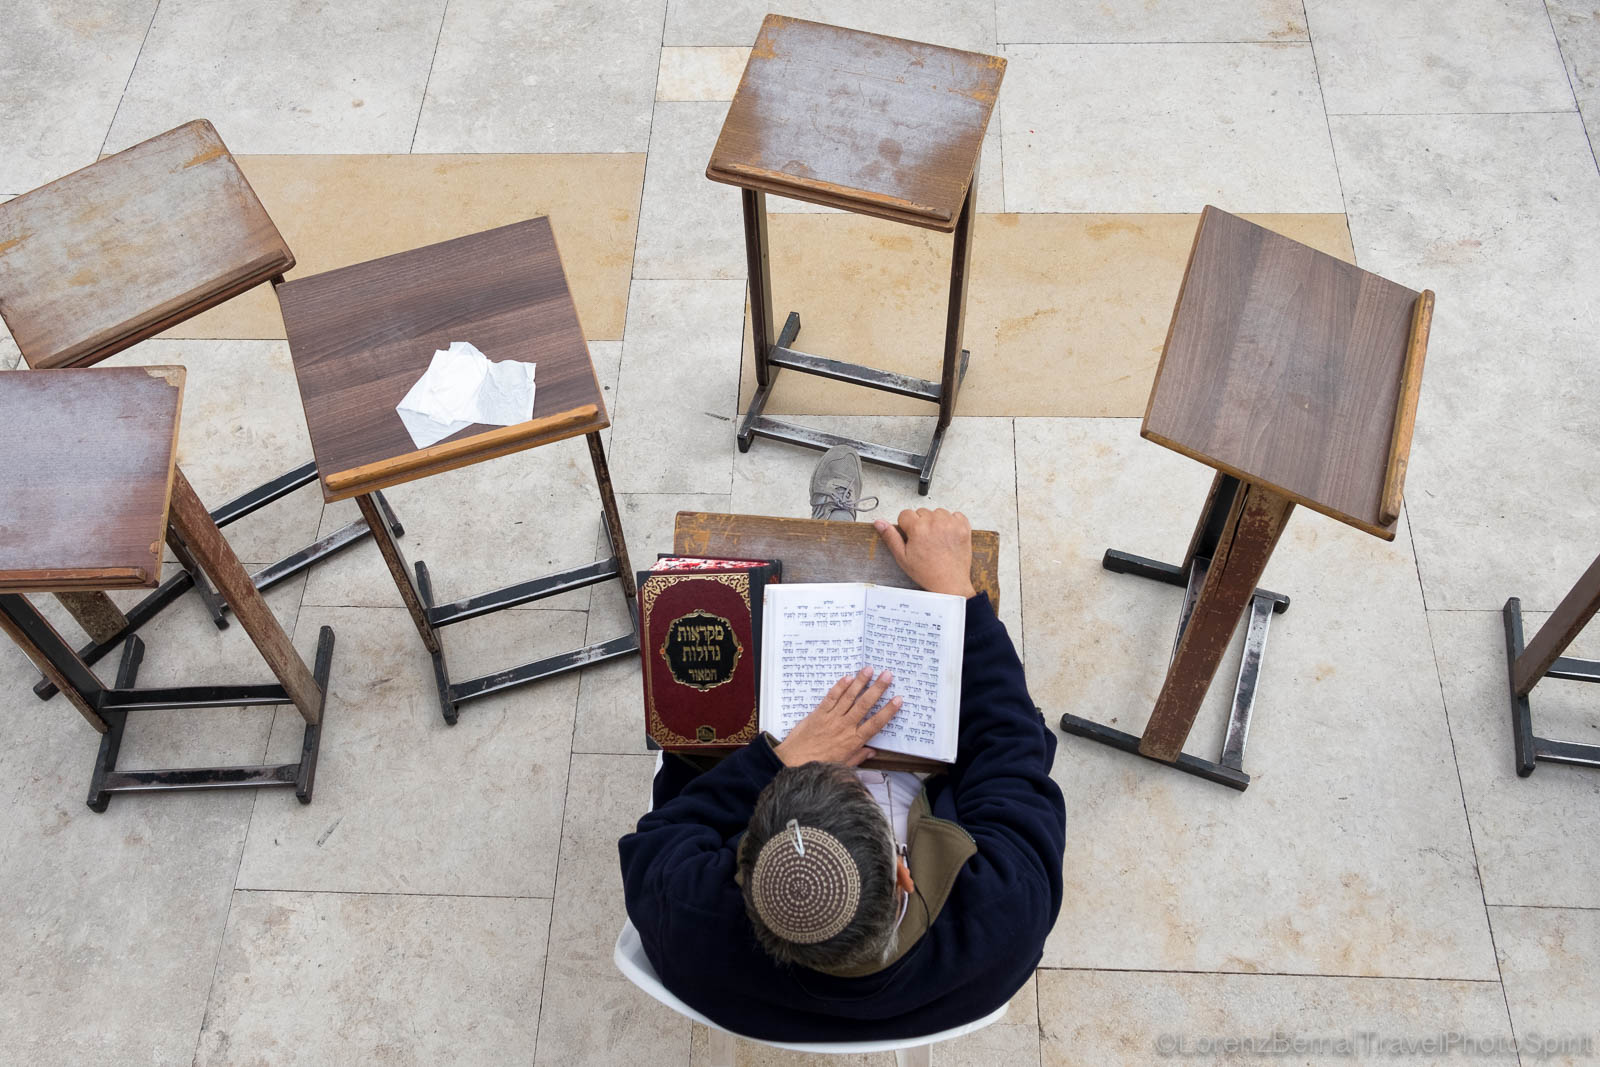 View from above of a jewish man studying the Torah, Jerusalem, Israel.